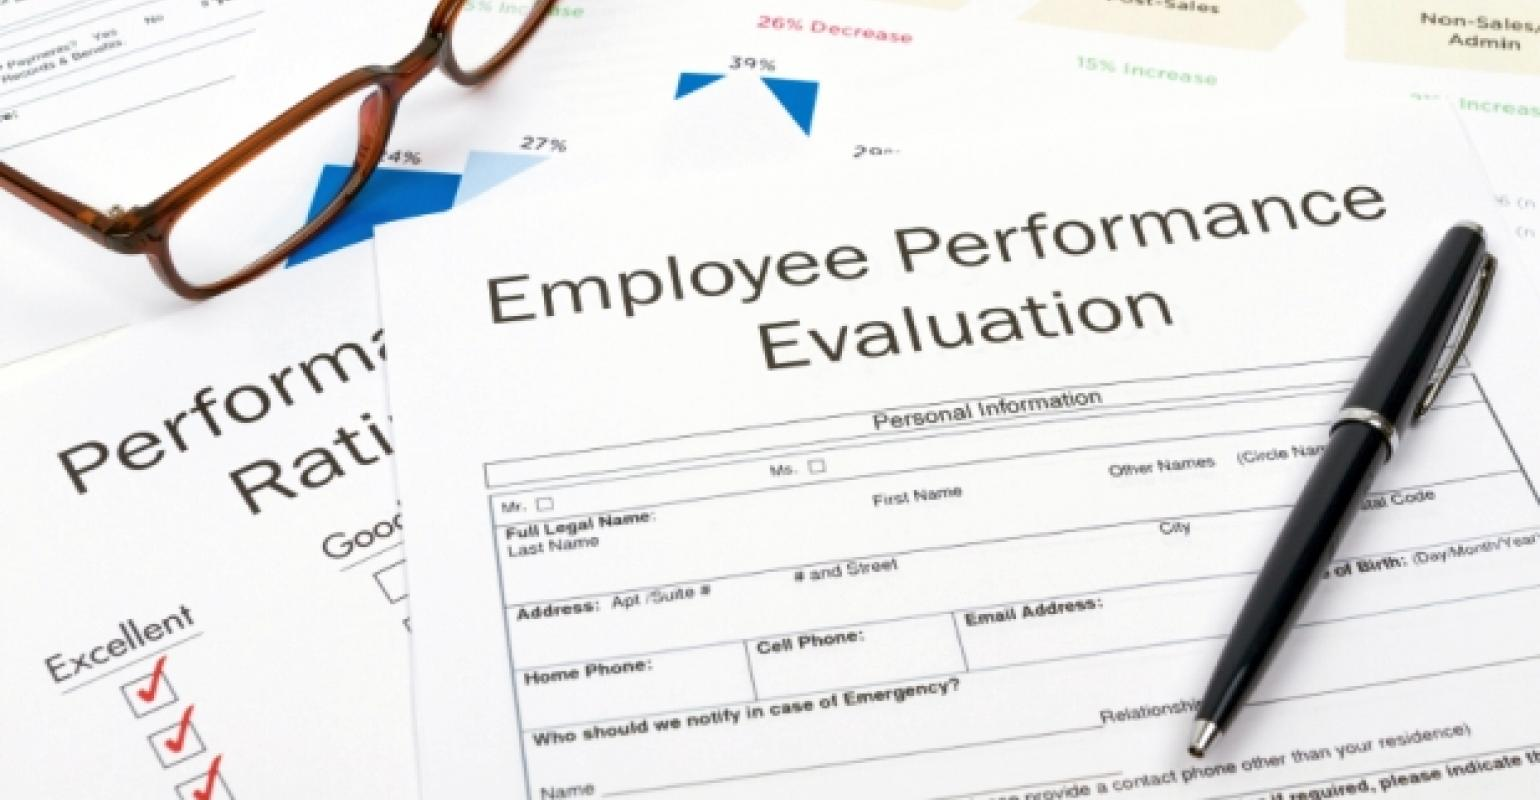 Employee performance Evaluation System Project In PHP wITH sOURCE CODE